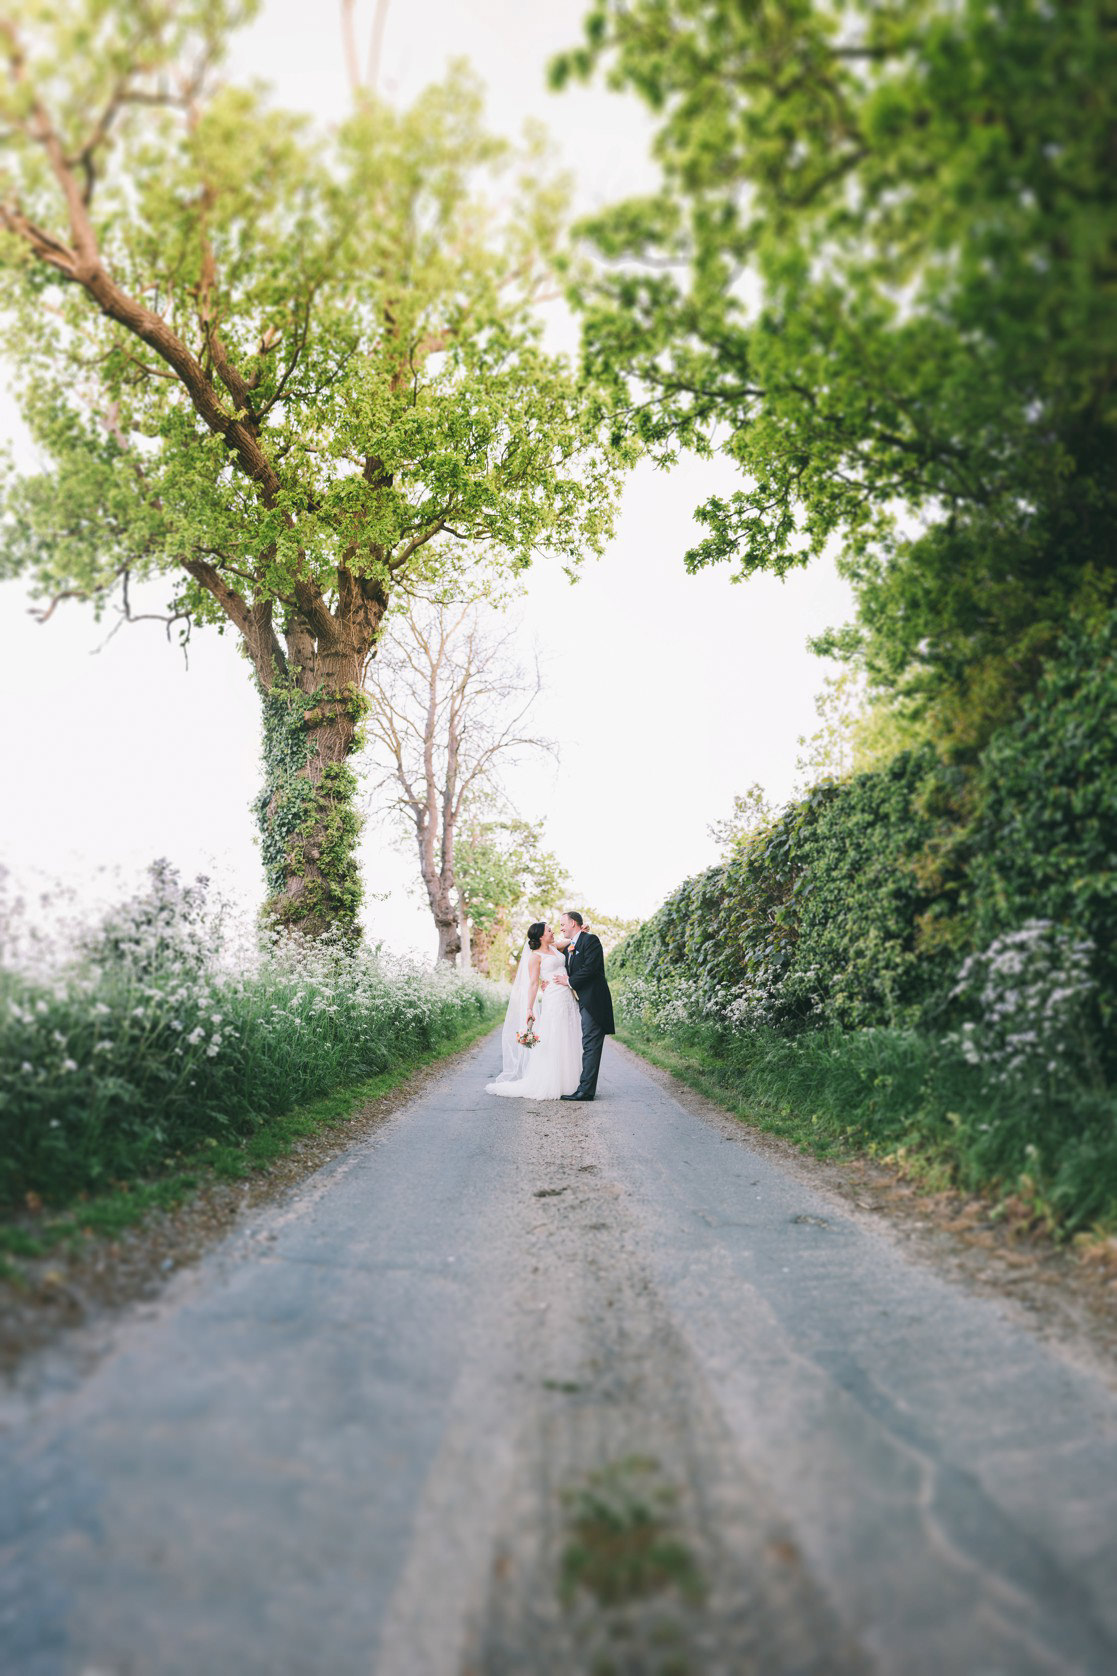 Rob-And-Kate-Wedding-Photography-The-Barn-At-Woodlands-Stokesby-By-Norfolk-And-Suffolk-Wedding-Photographer-James-Powell-050.jpg